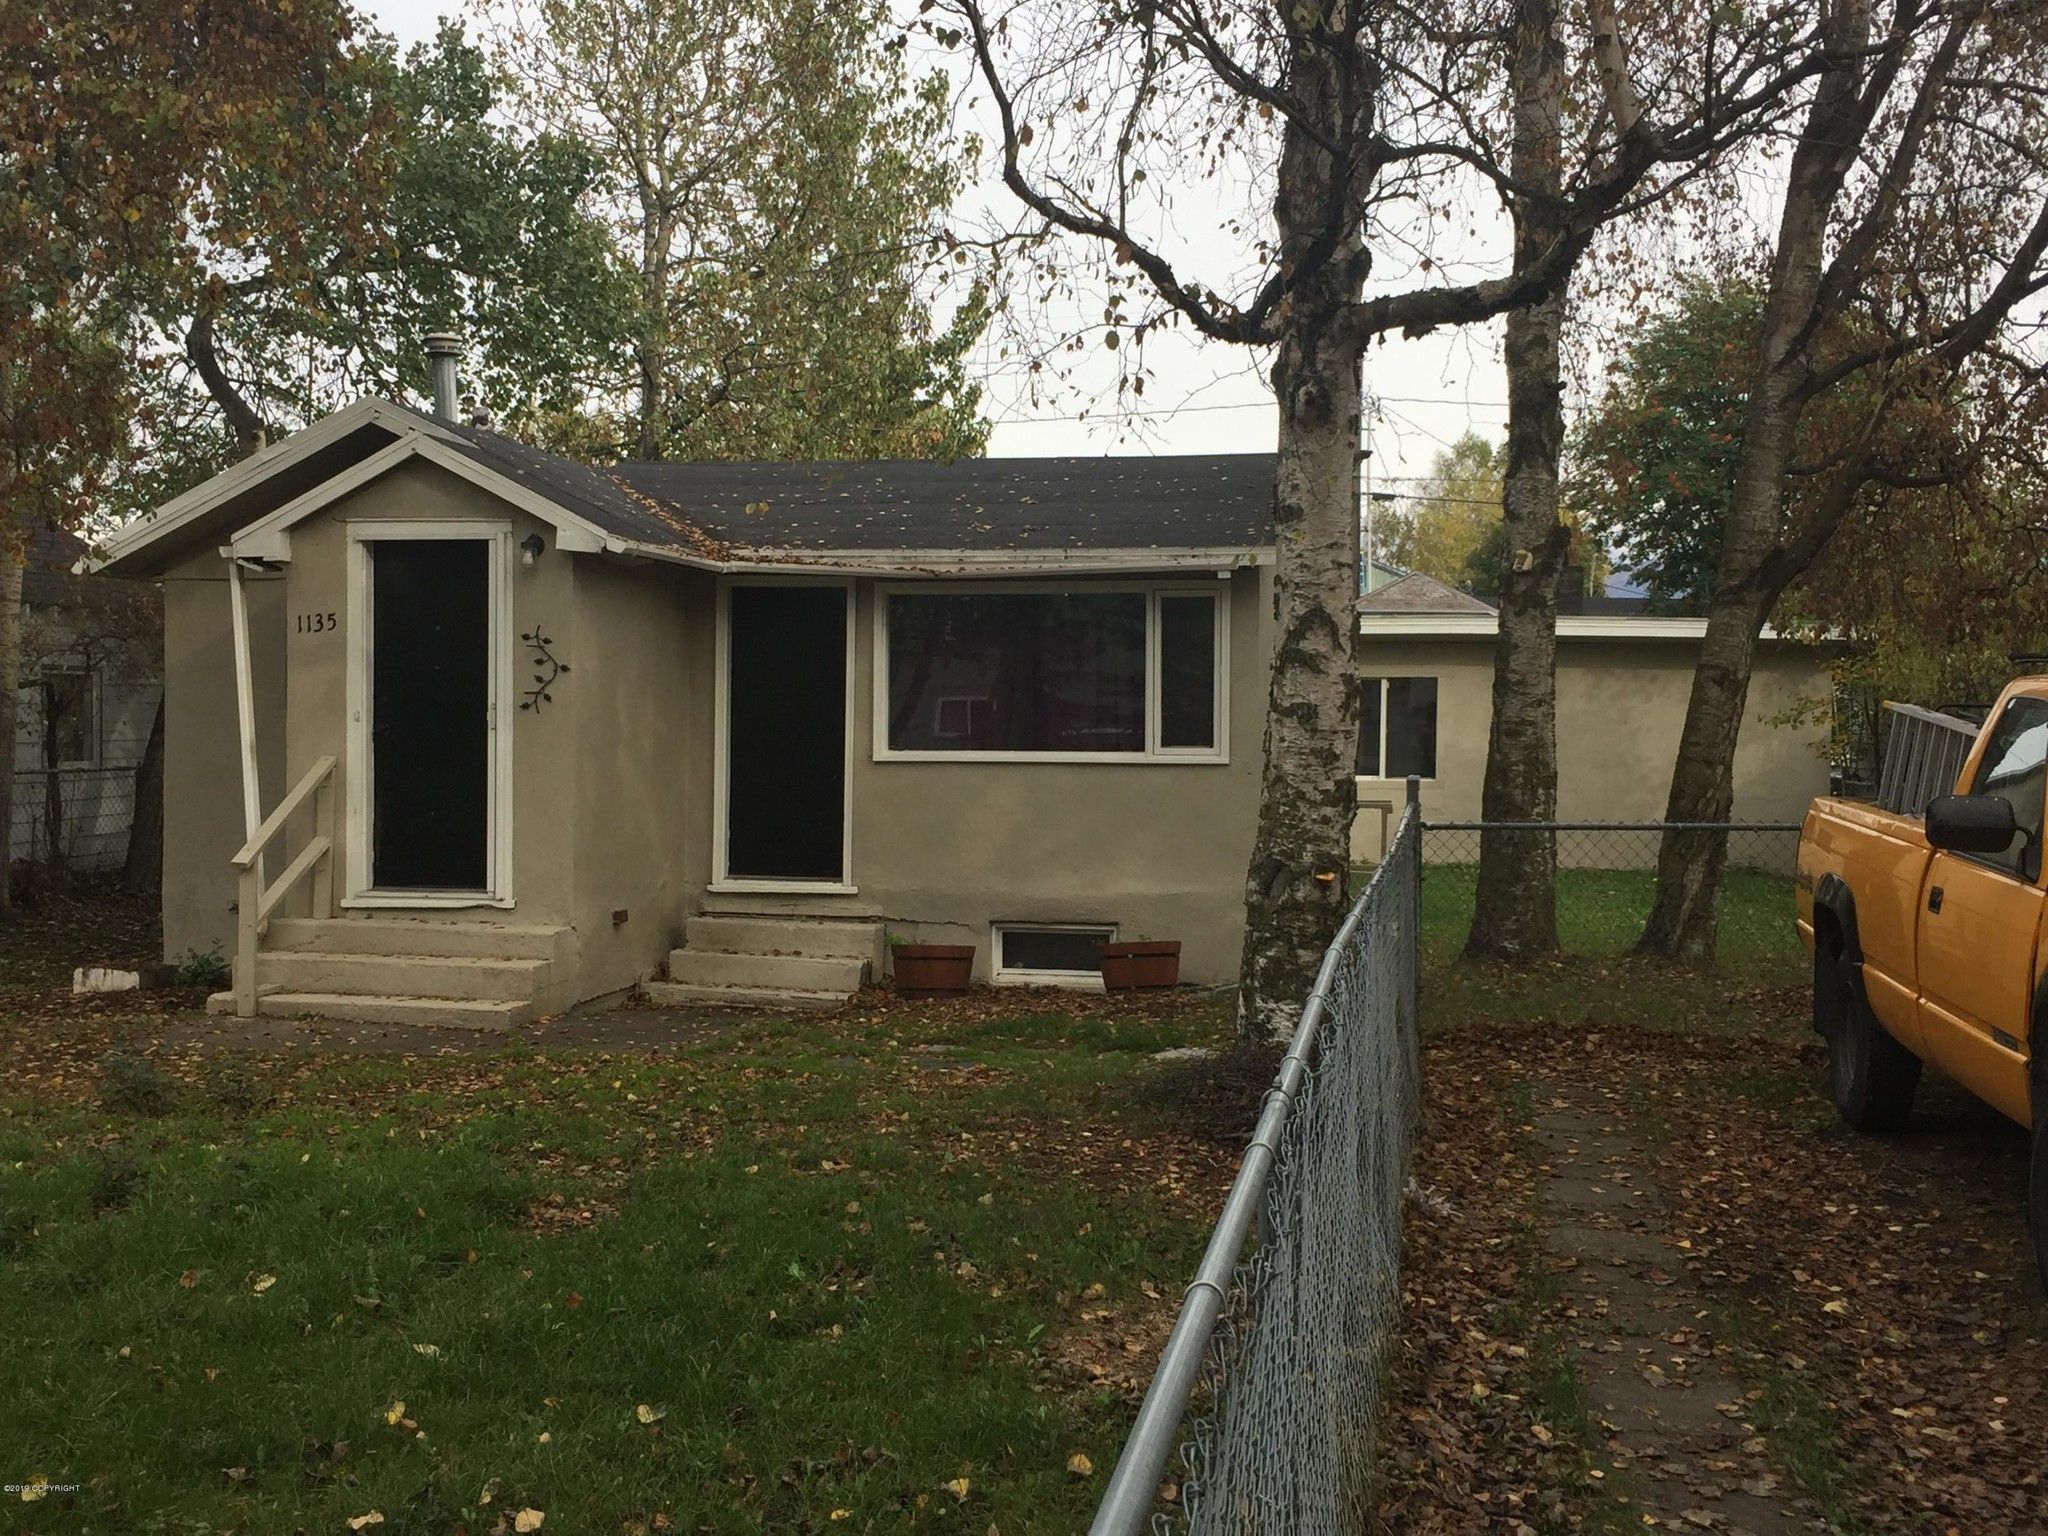 2-Story Multi-Family Home In Fairview